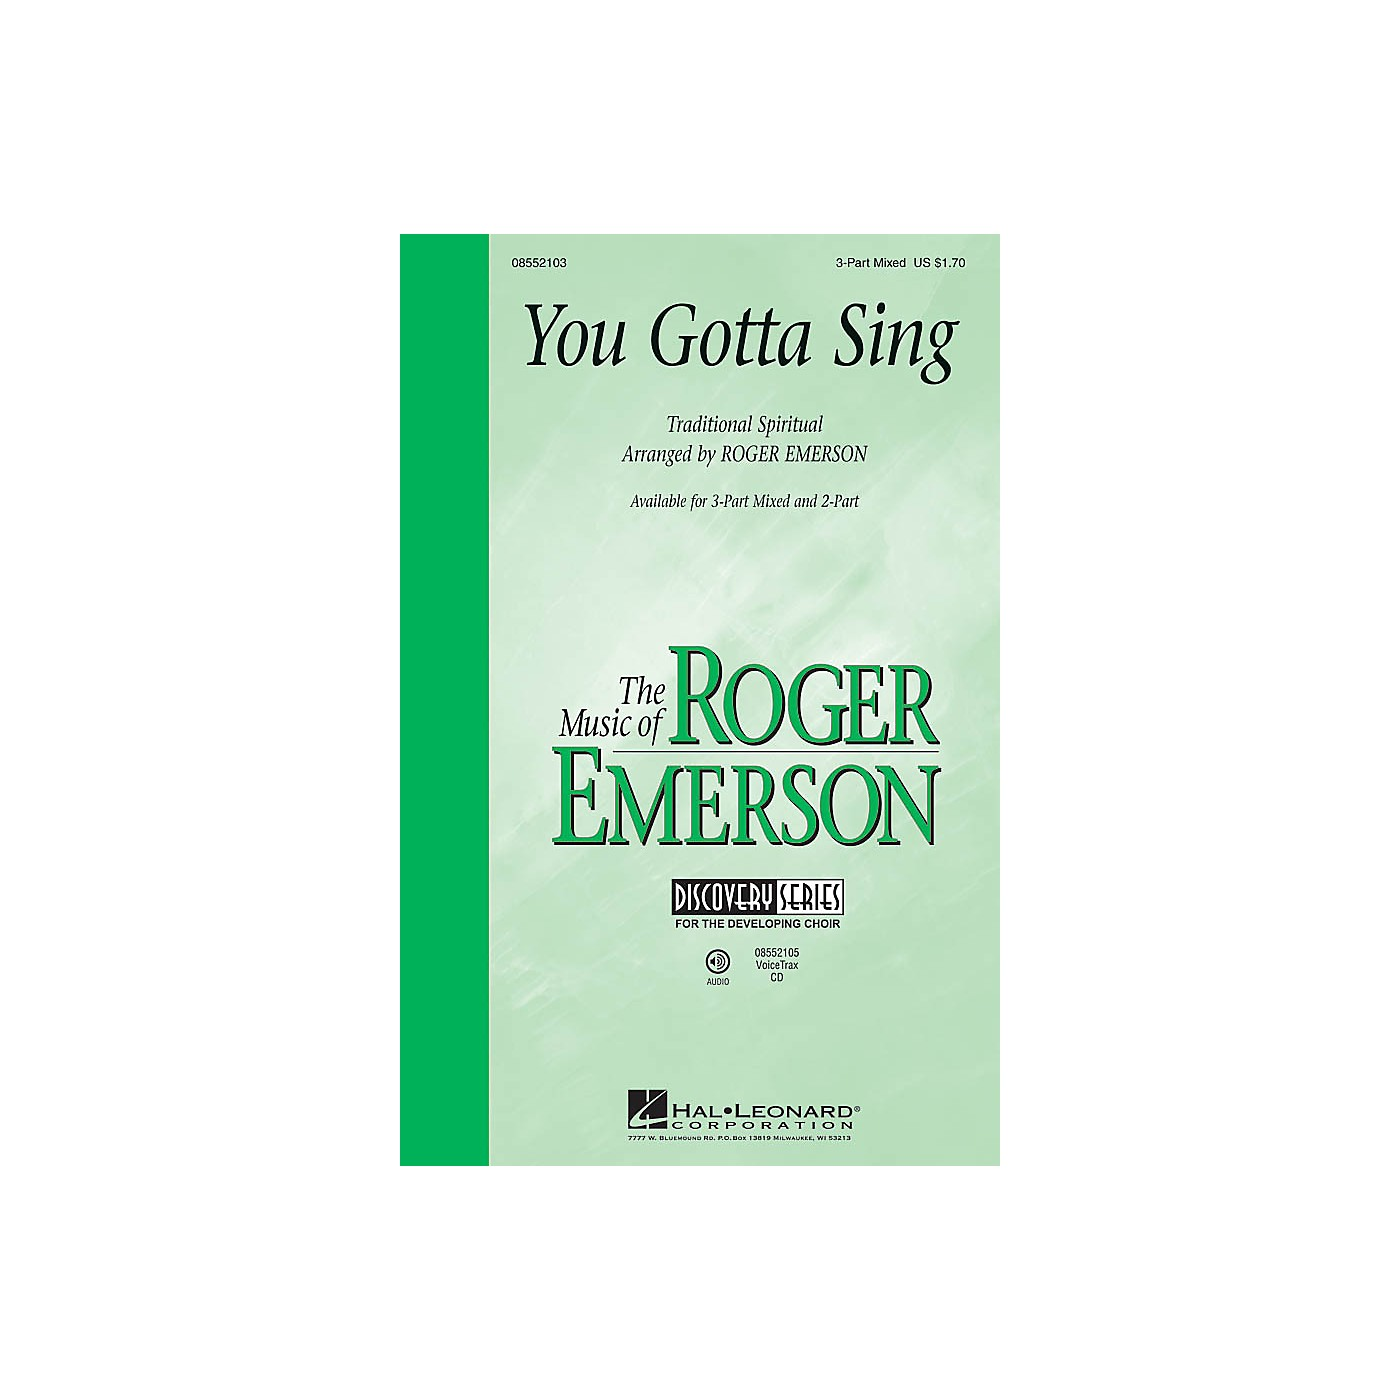 Hal Leonard You Gotta Sing (Discovery Level 1) VoiceTrax CD Arranged by Roger Emerson thumbnail